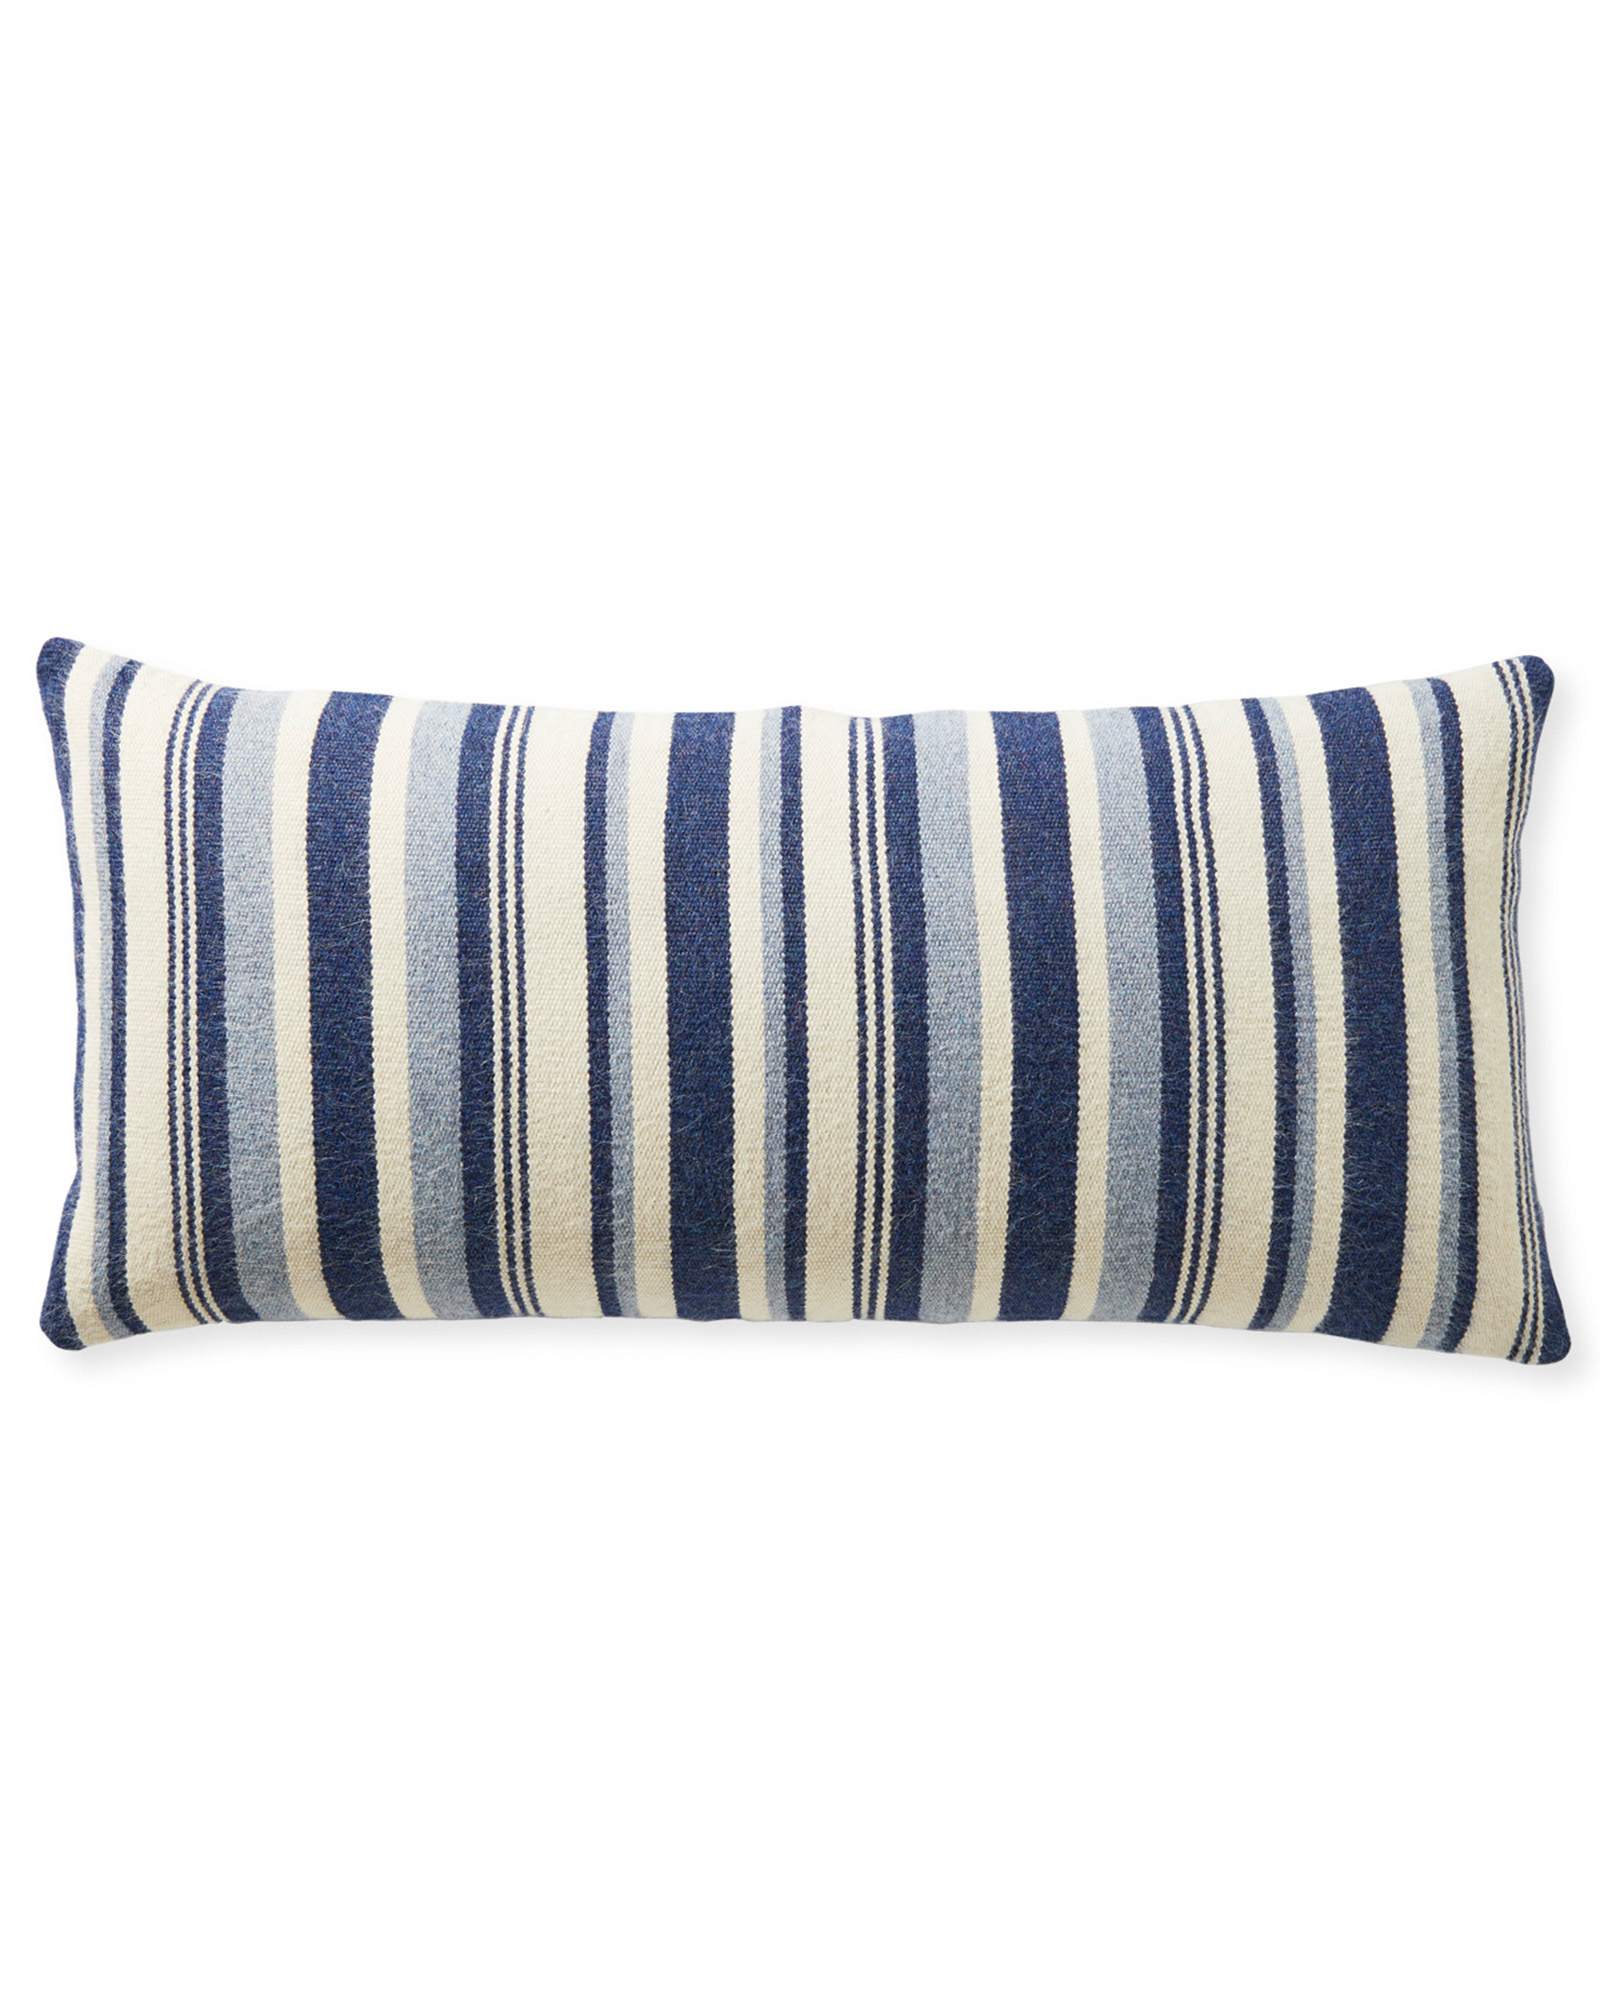 Lima Pillow Cover, Blue